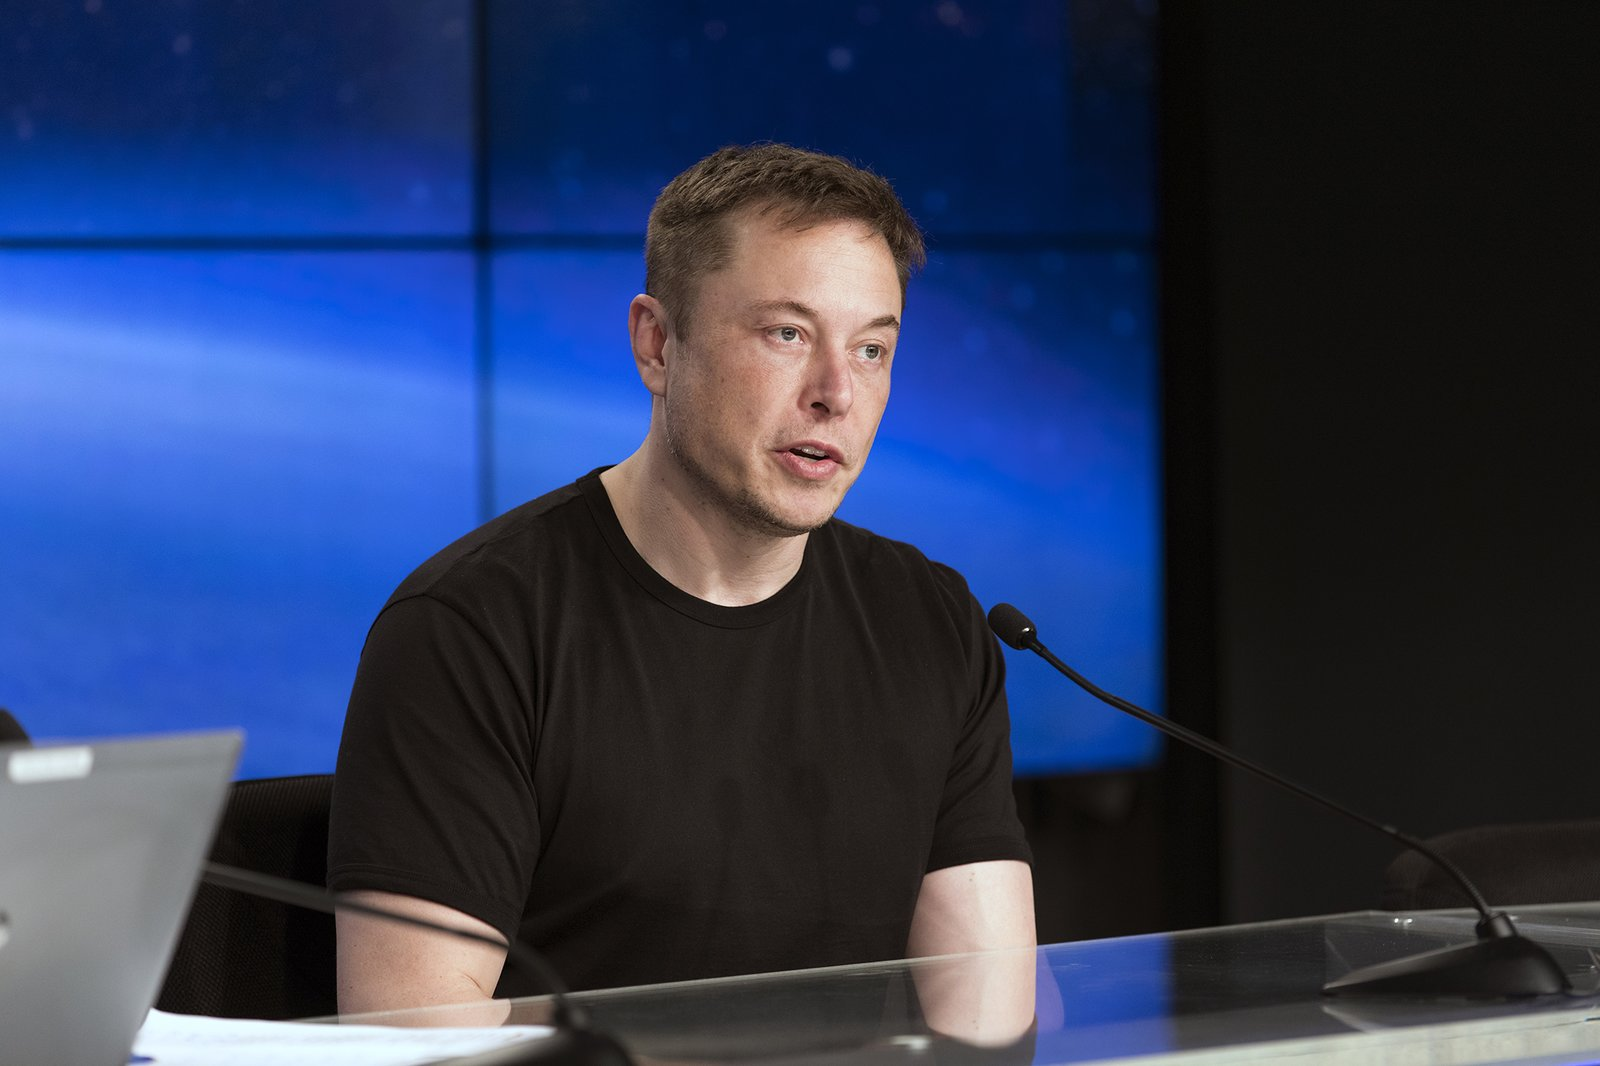 Elon Musk Offers to Manufacture Ventilators for Coronavirus Patients